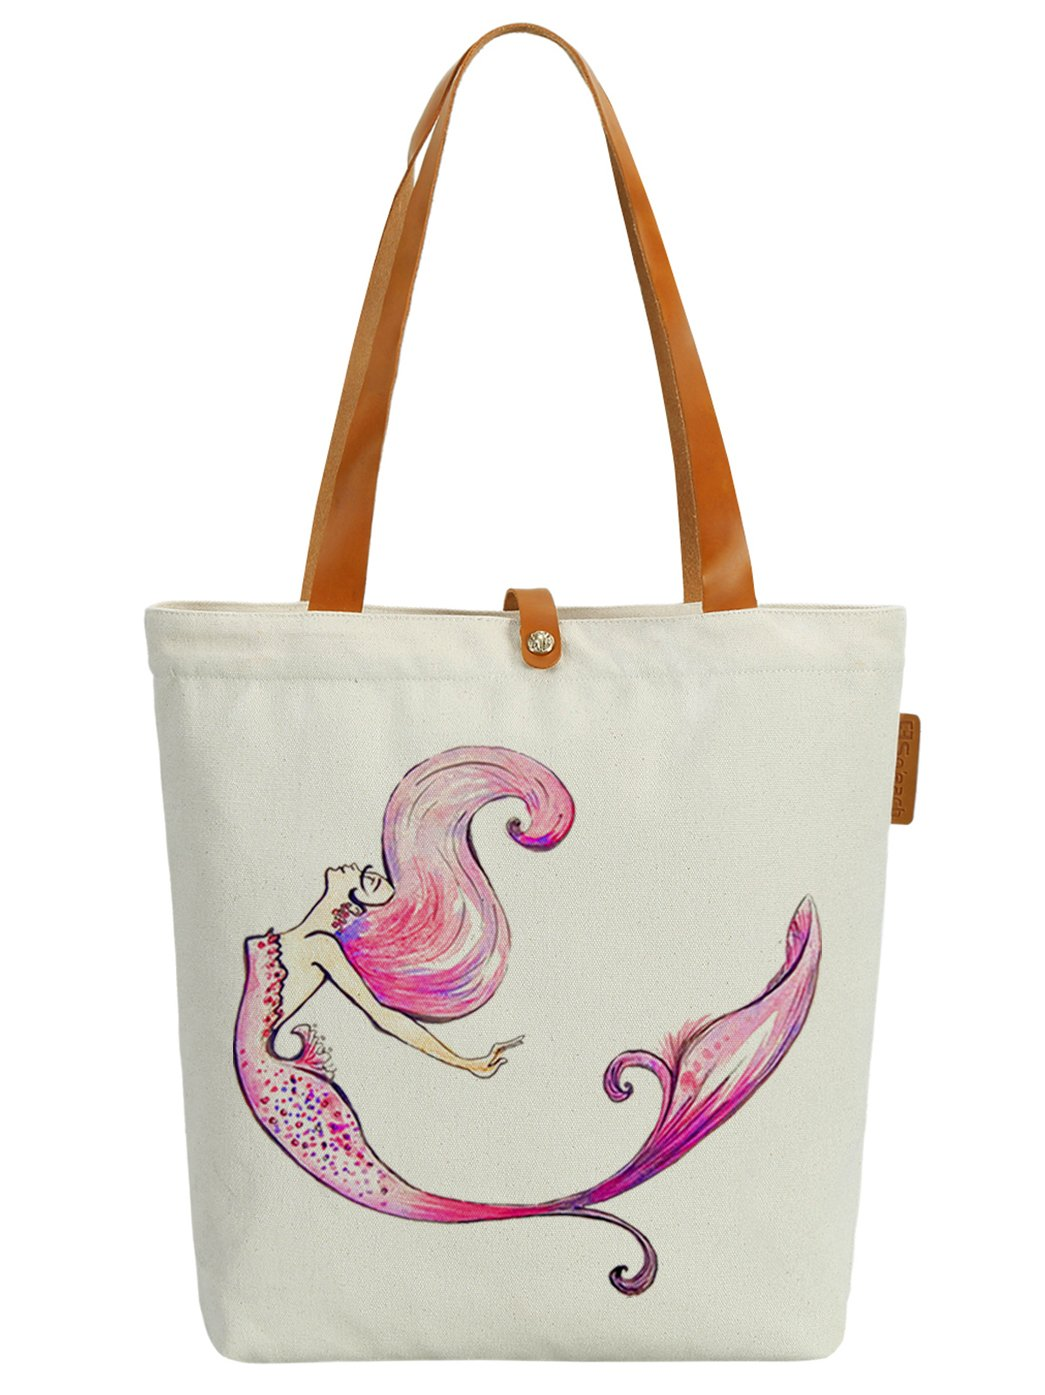 So'each Women's Colourful Mermaid Graphic Canvas Tote Shopper Shoulder Bag by So'each (Image #1)